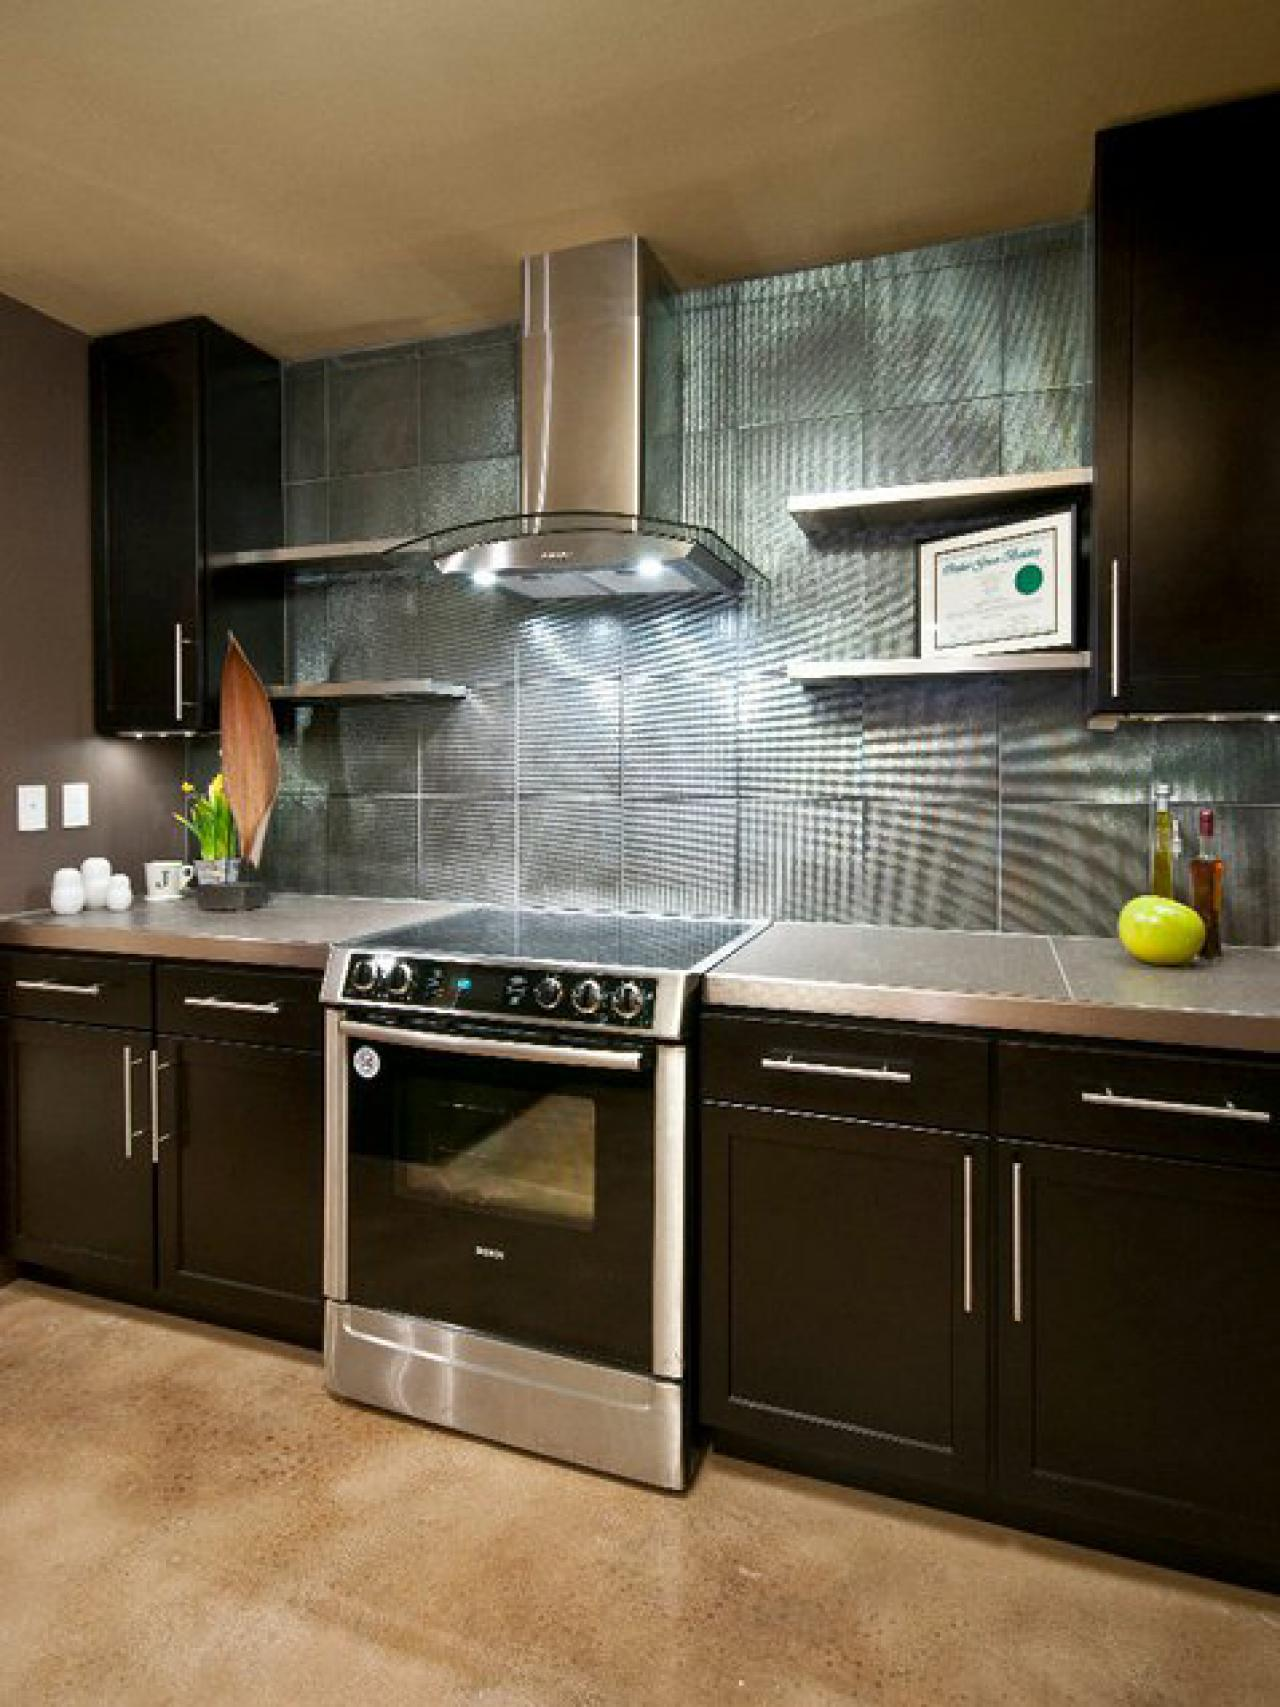 Do it yourself diy kitchen backsplash ideas hgtv Backsplash photos kitchen ideas